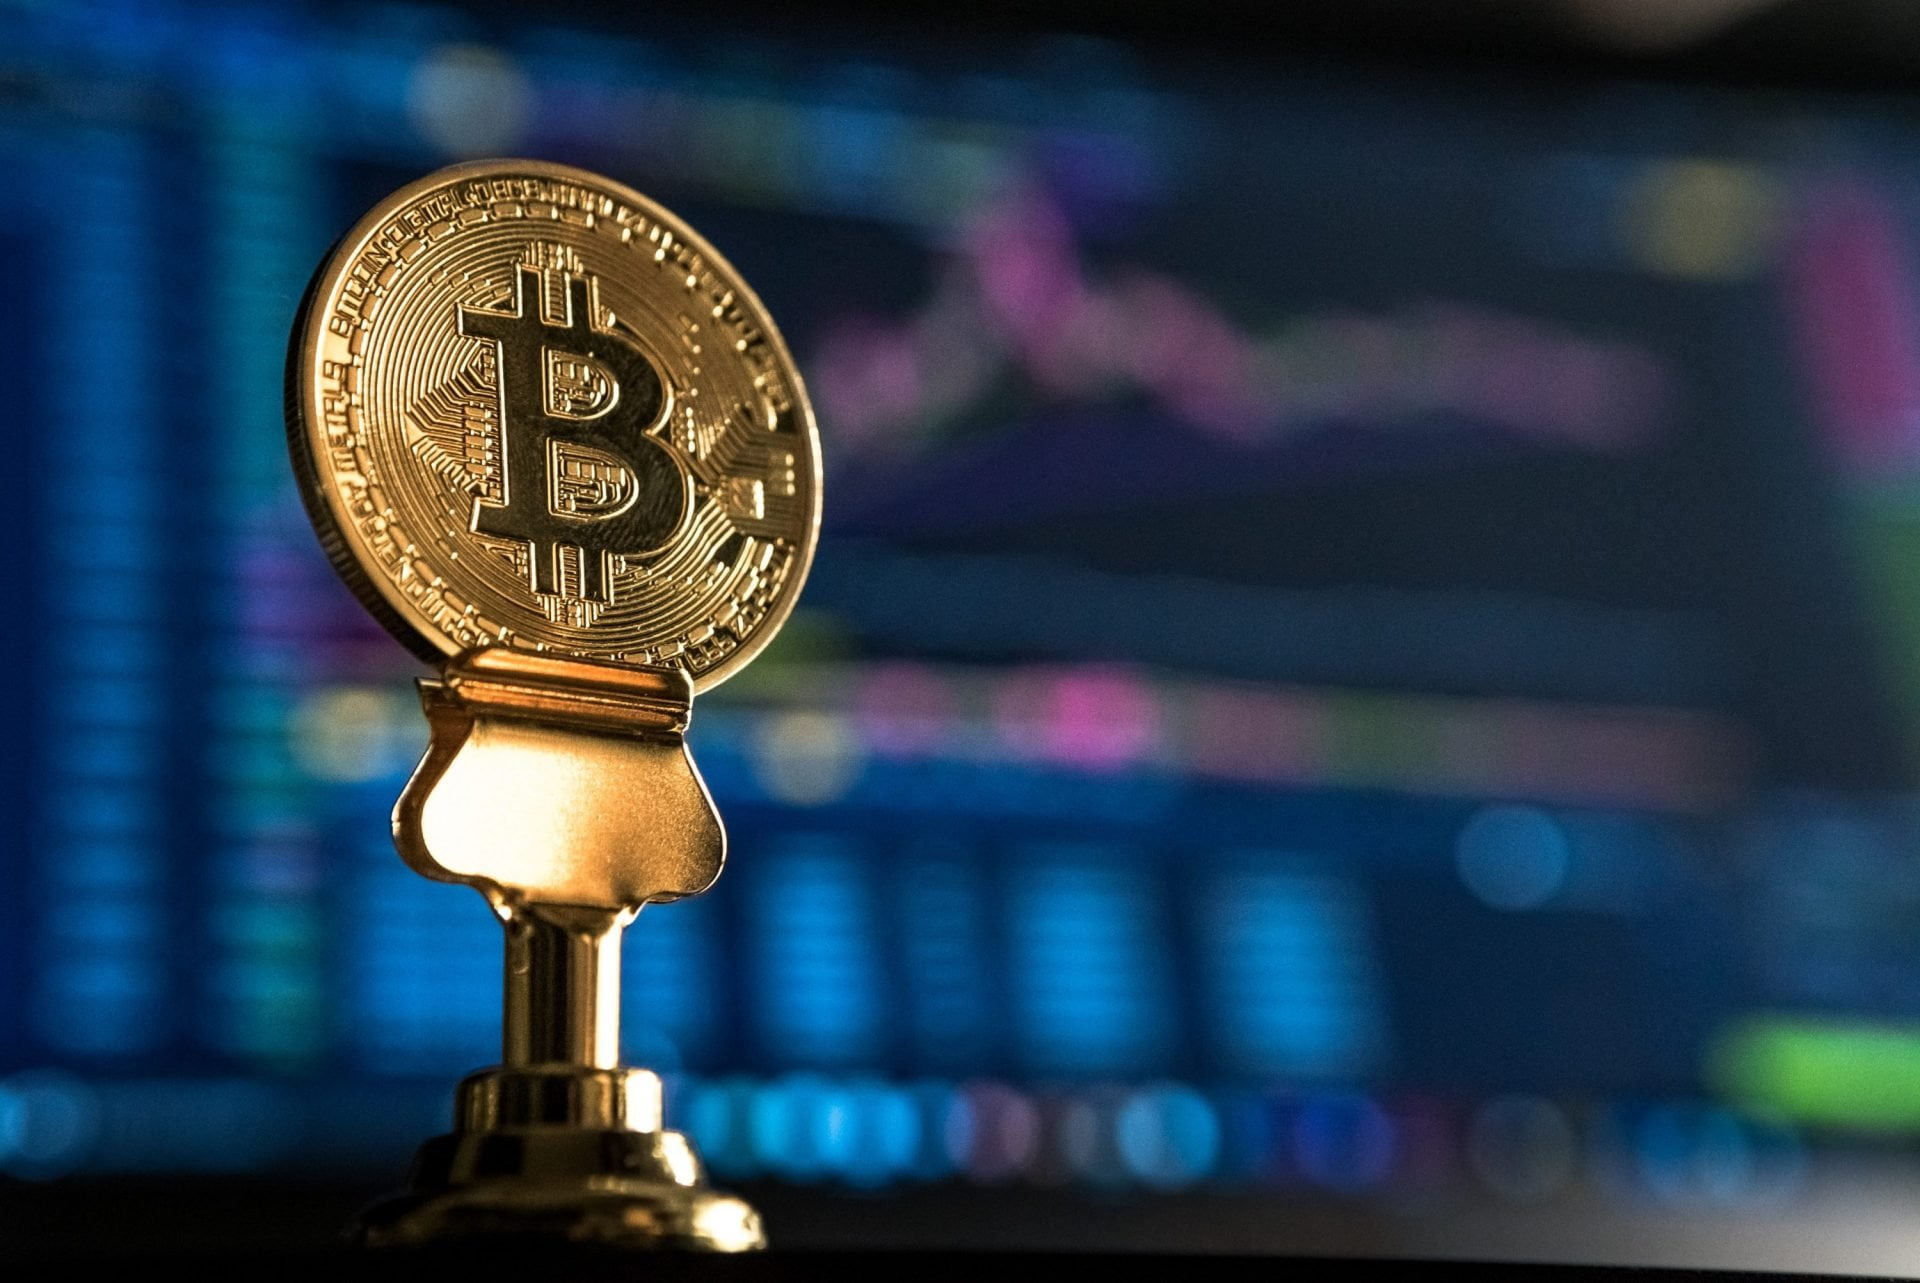 60% of Crypto Investors Expect Bitcoin Price to See Upward Breakout: Poll 20